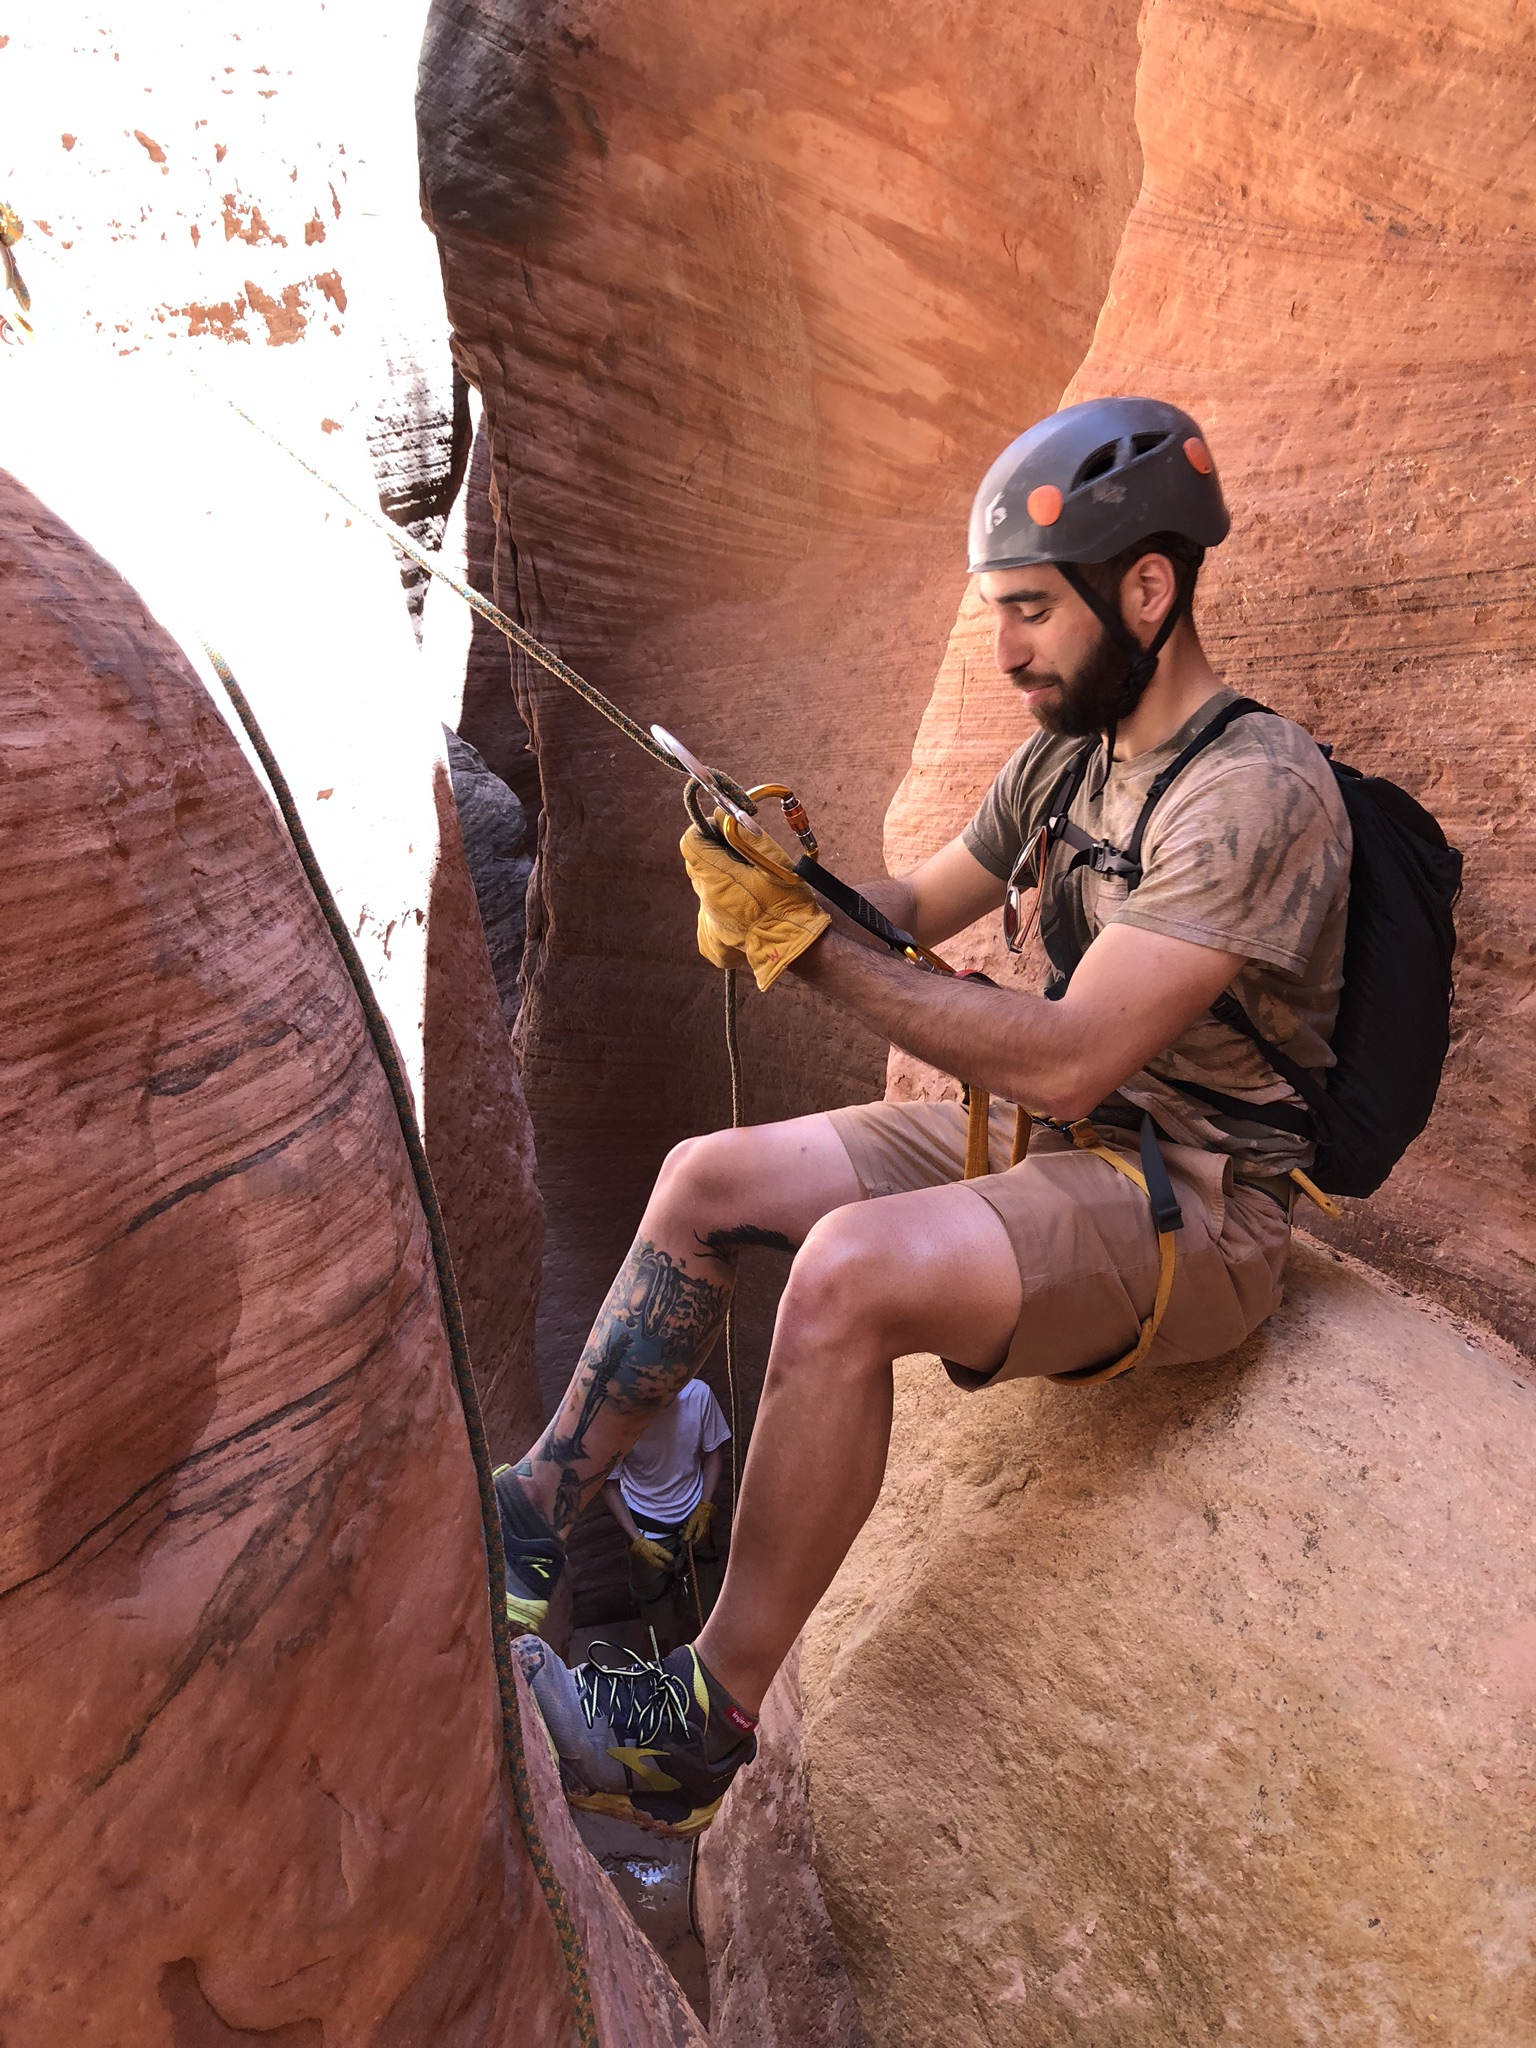 east-zion-adventures-hiking-canyoneering-slot-canyons